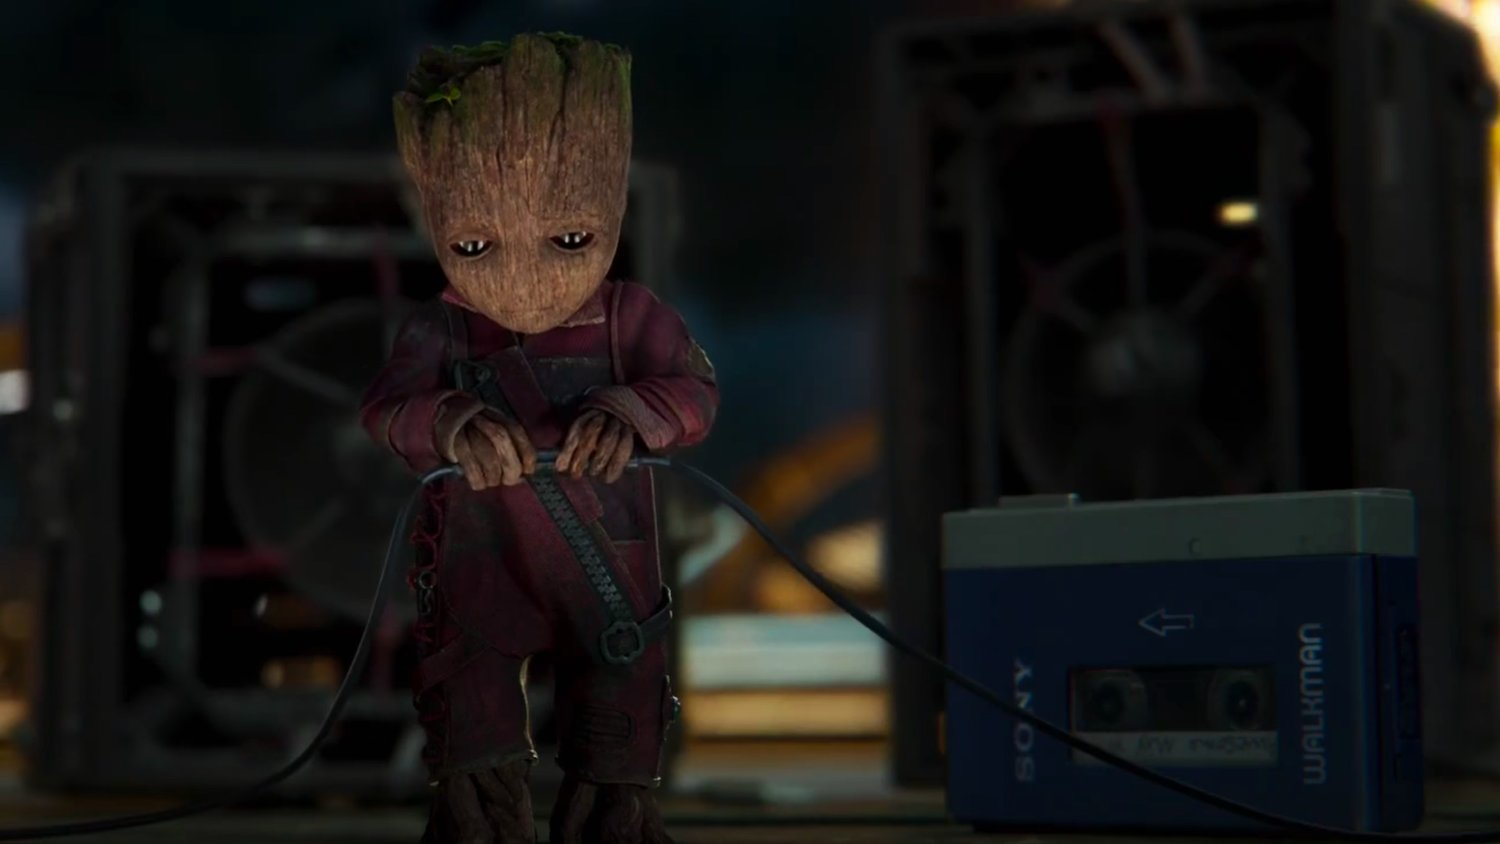 GUARDIANS OF THE GALAXY VOL. 2 Gets an Exciting New TV Spot with David Bowie's